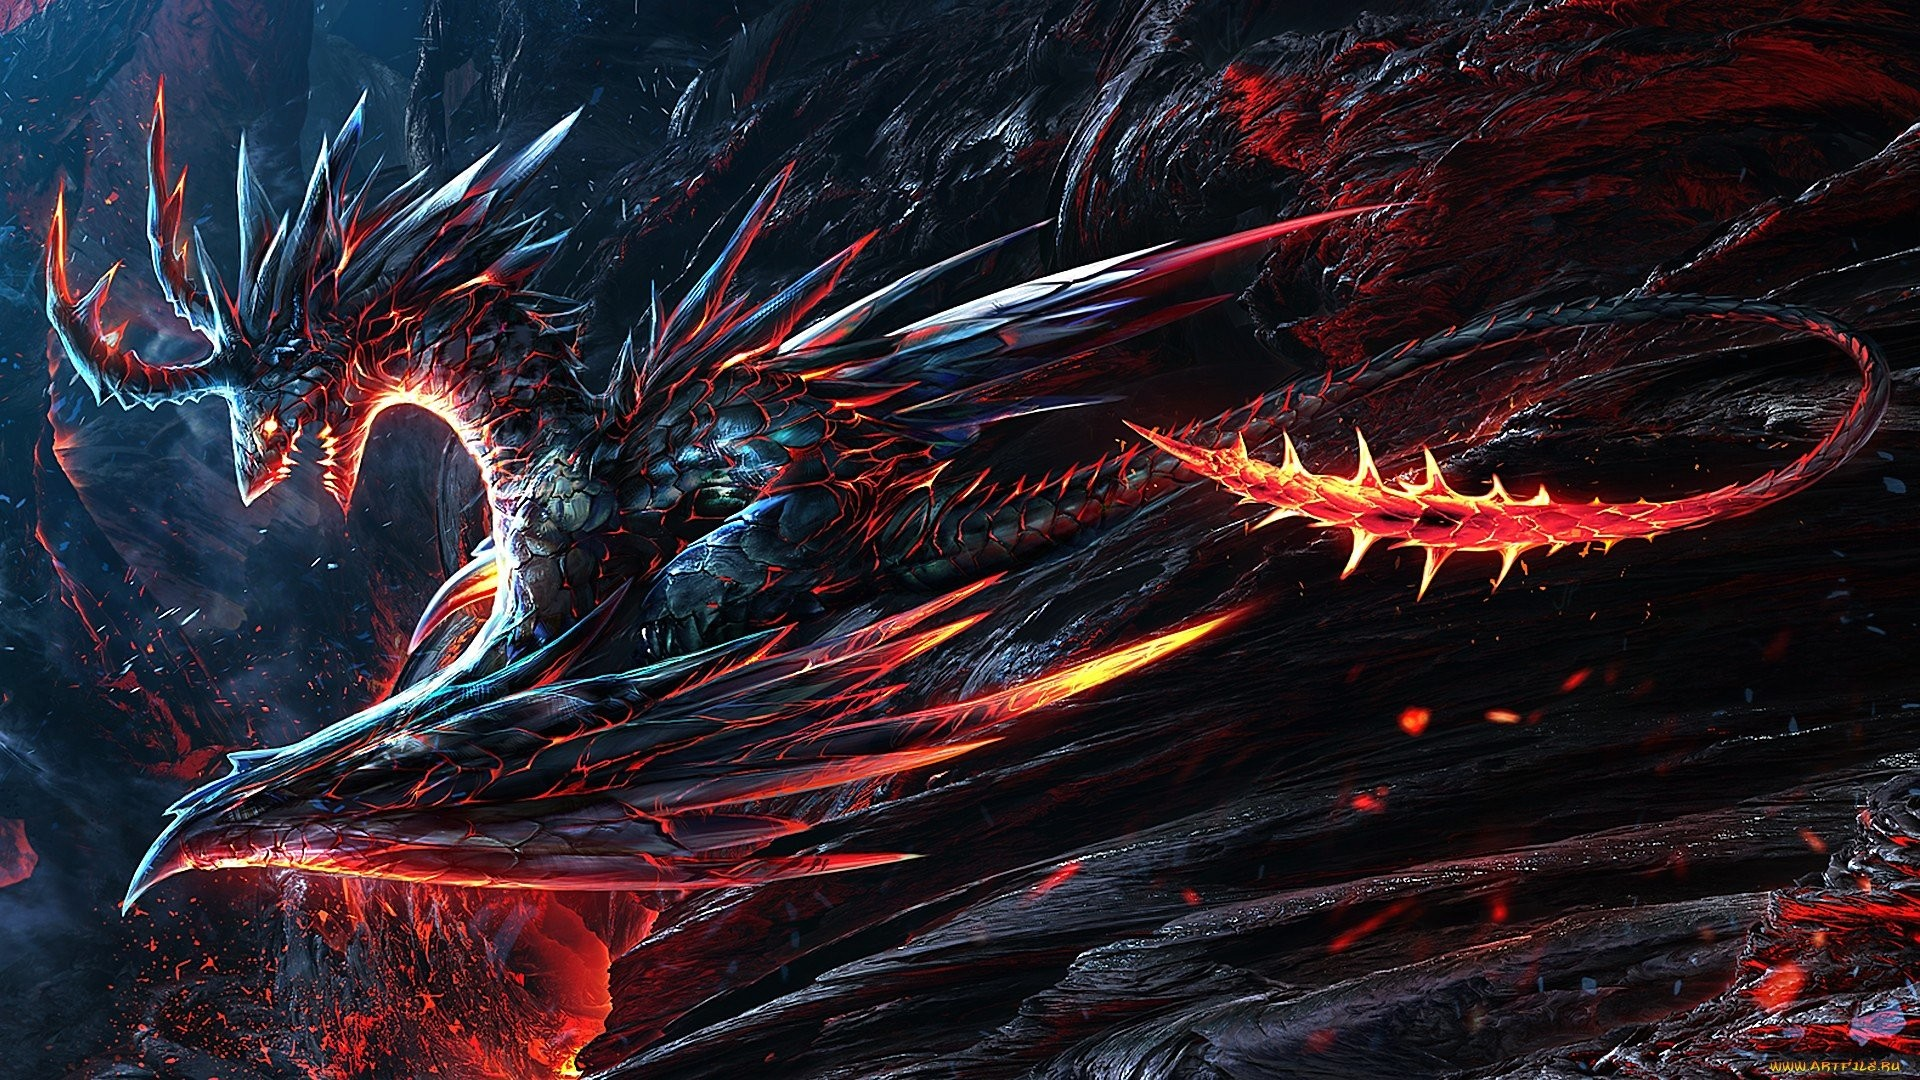 Hd Red Eyes Black Dragon Wallpaper Posted By Ethan Simpson